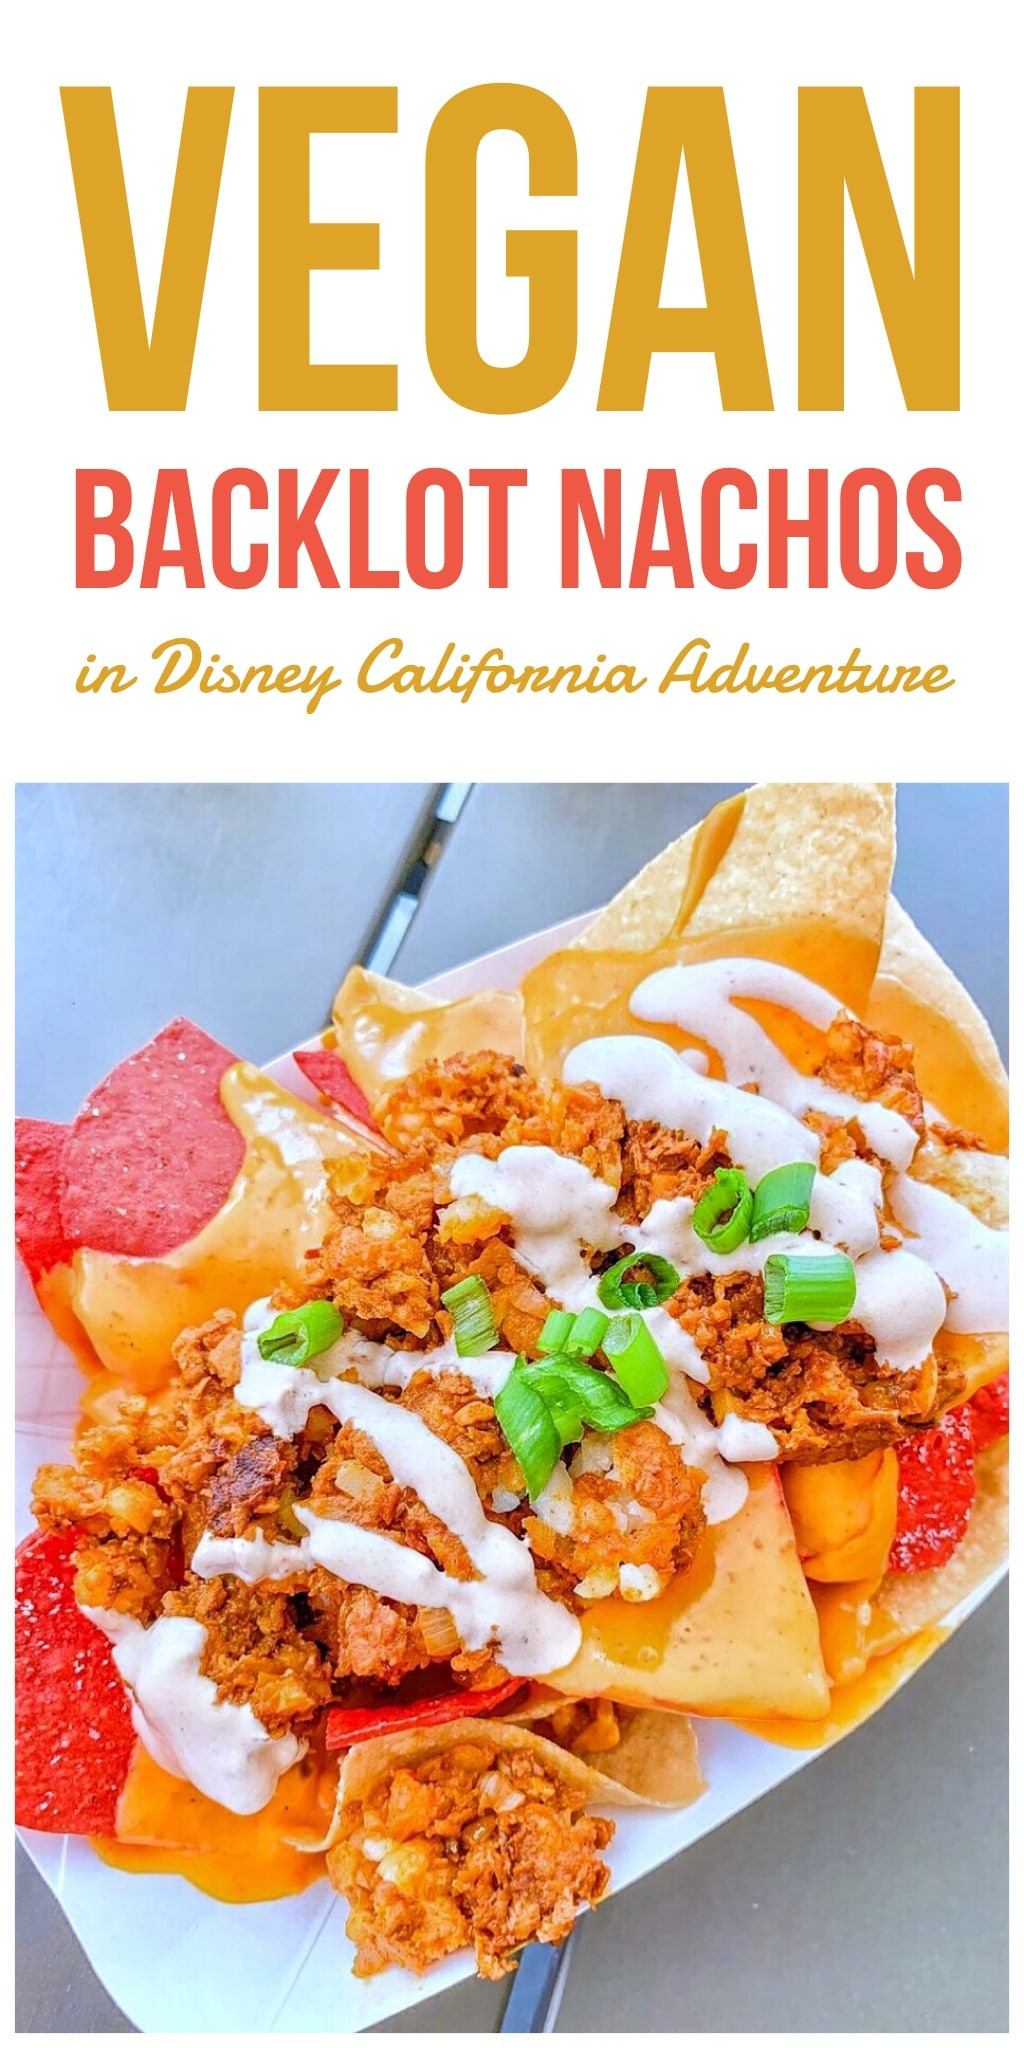 Vegan Backlot Nachos at Studio Catering Co in Disney California Adventure